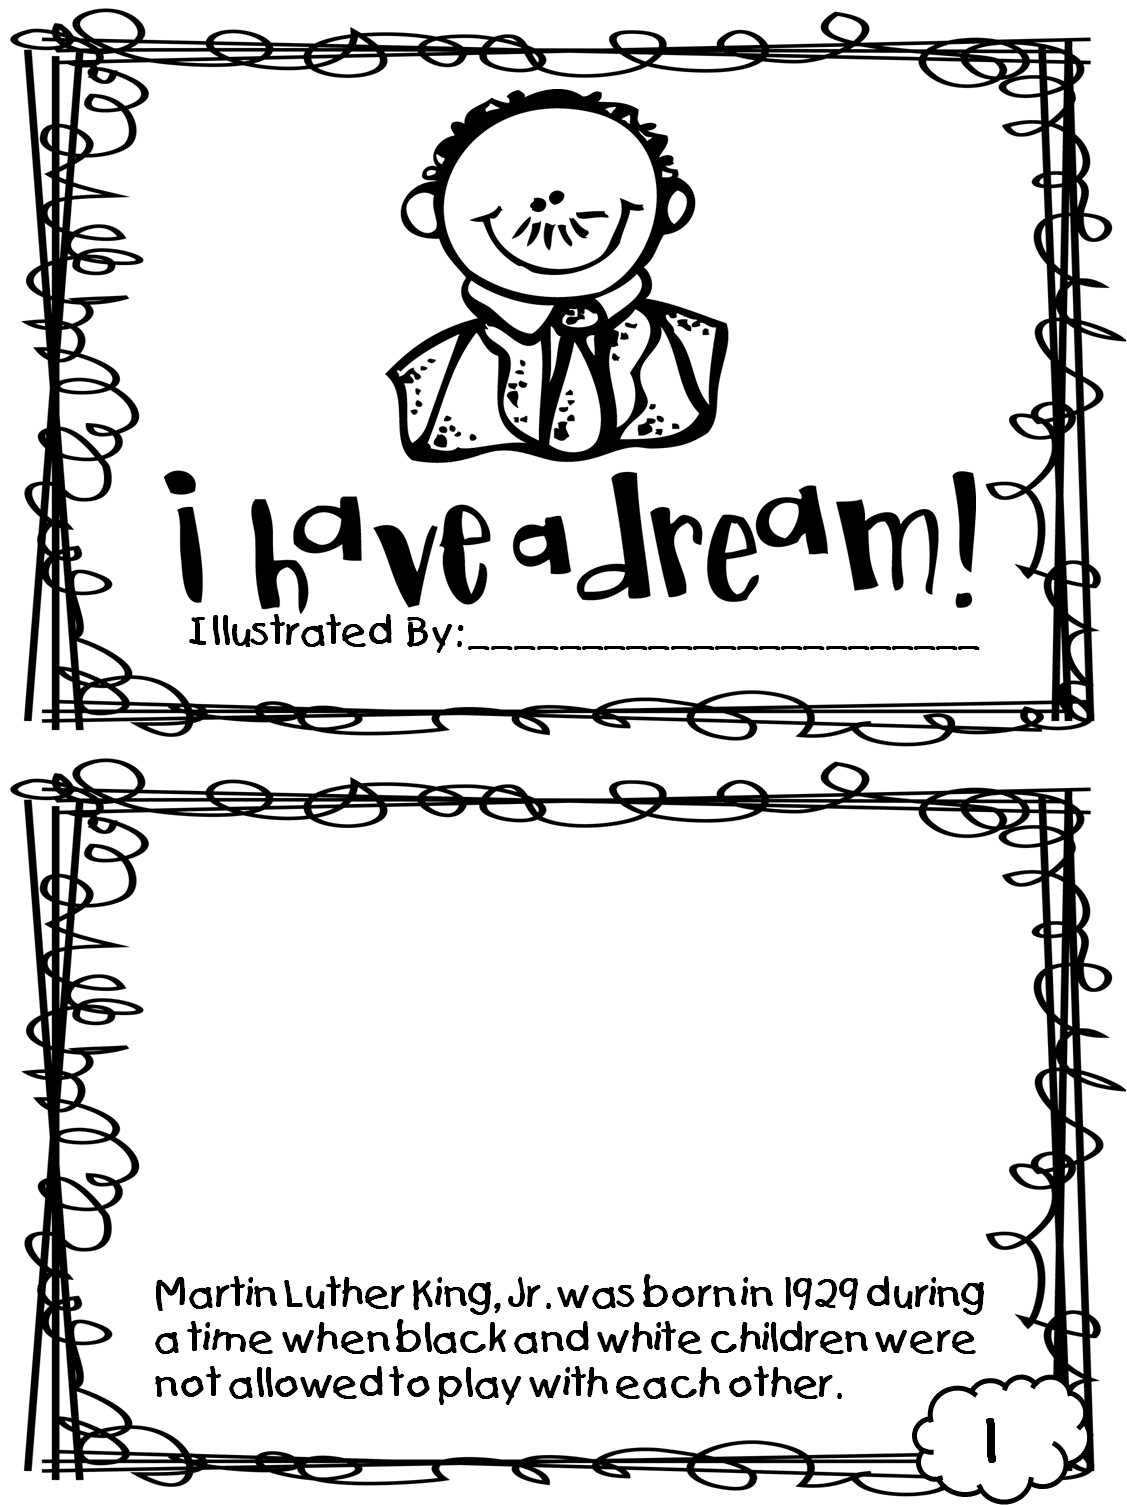 worksheet Martin Luther King Worksheet martin luther king jr coloring pages and worksheets best dream worksheet